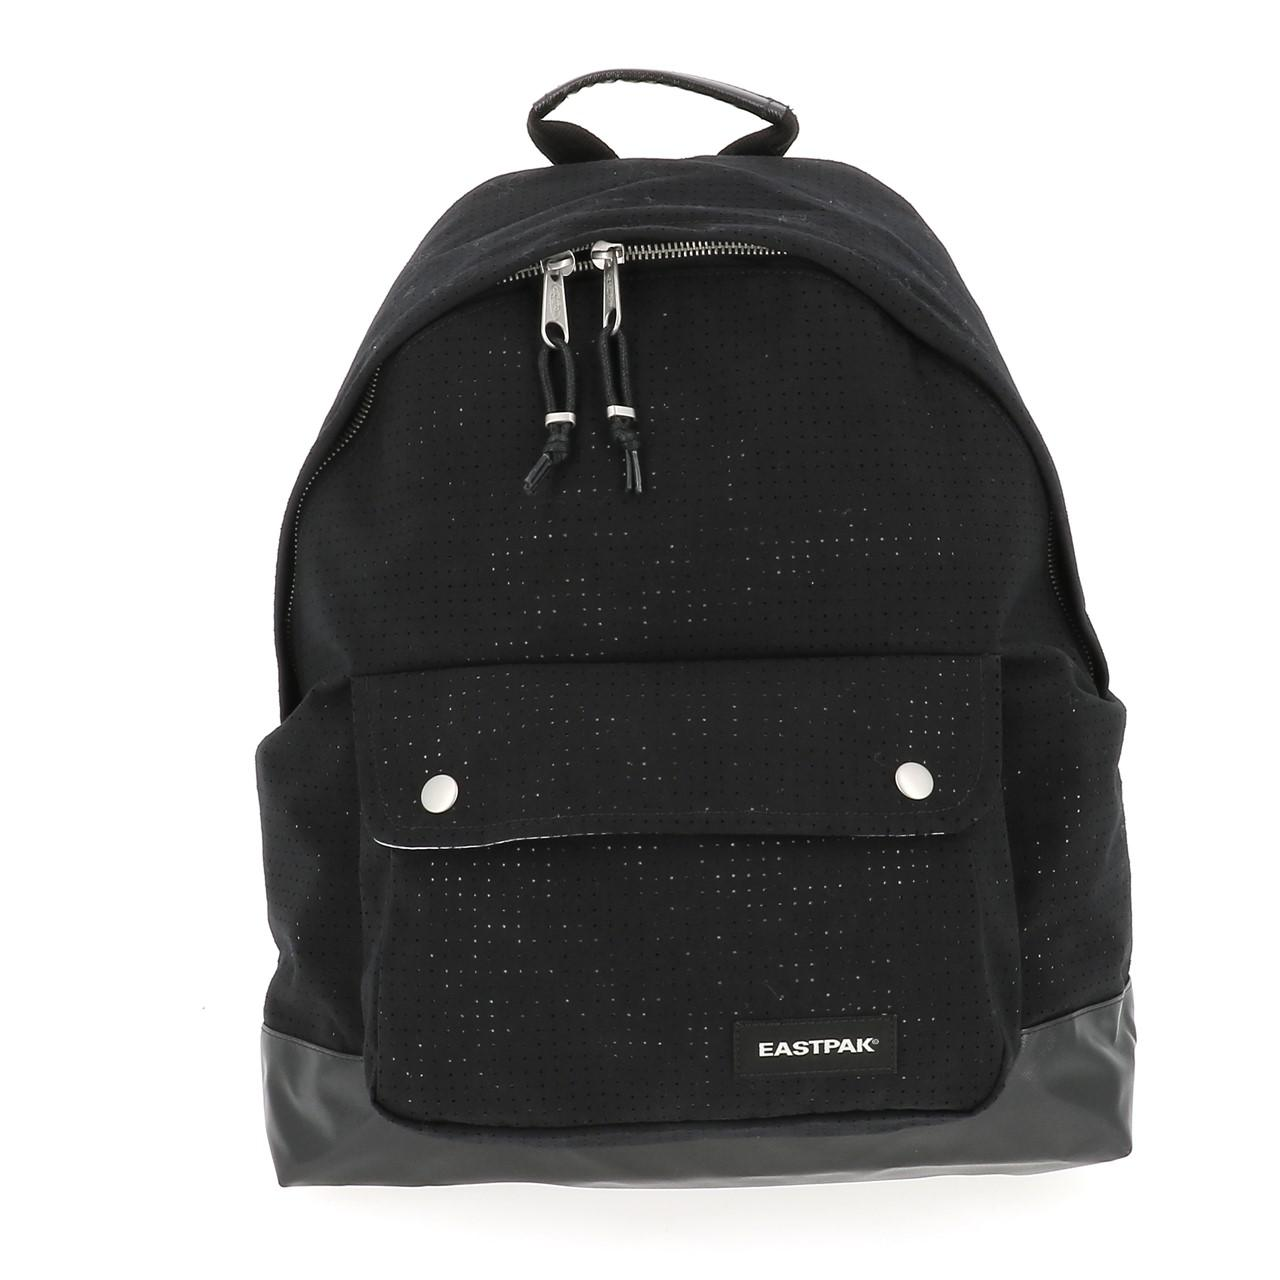 Sac-a-dos-college-Eastpak-Padded-pinched-black-Noir-70649-Neuf